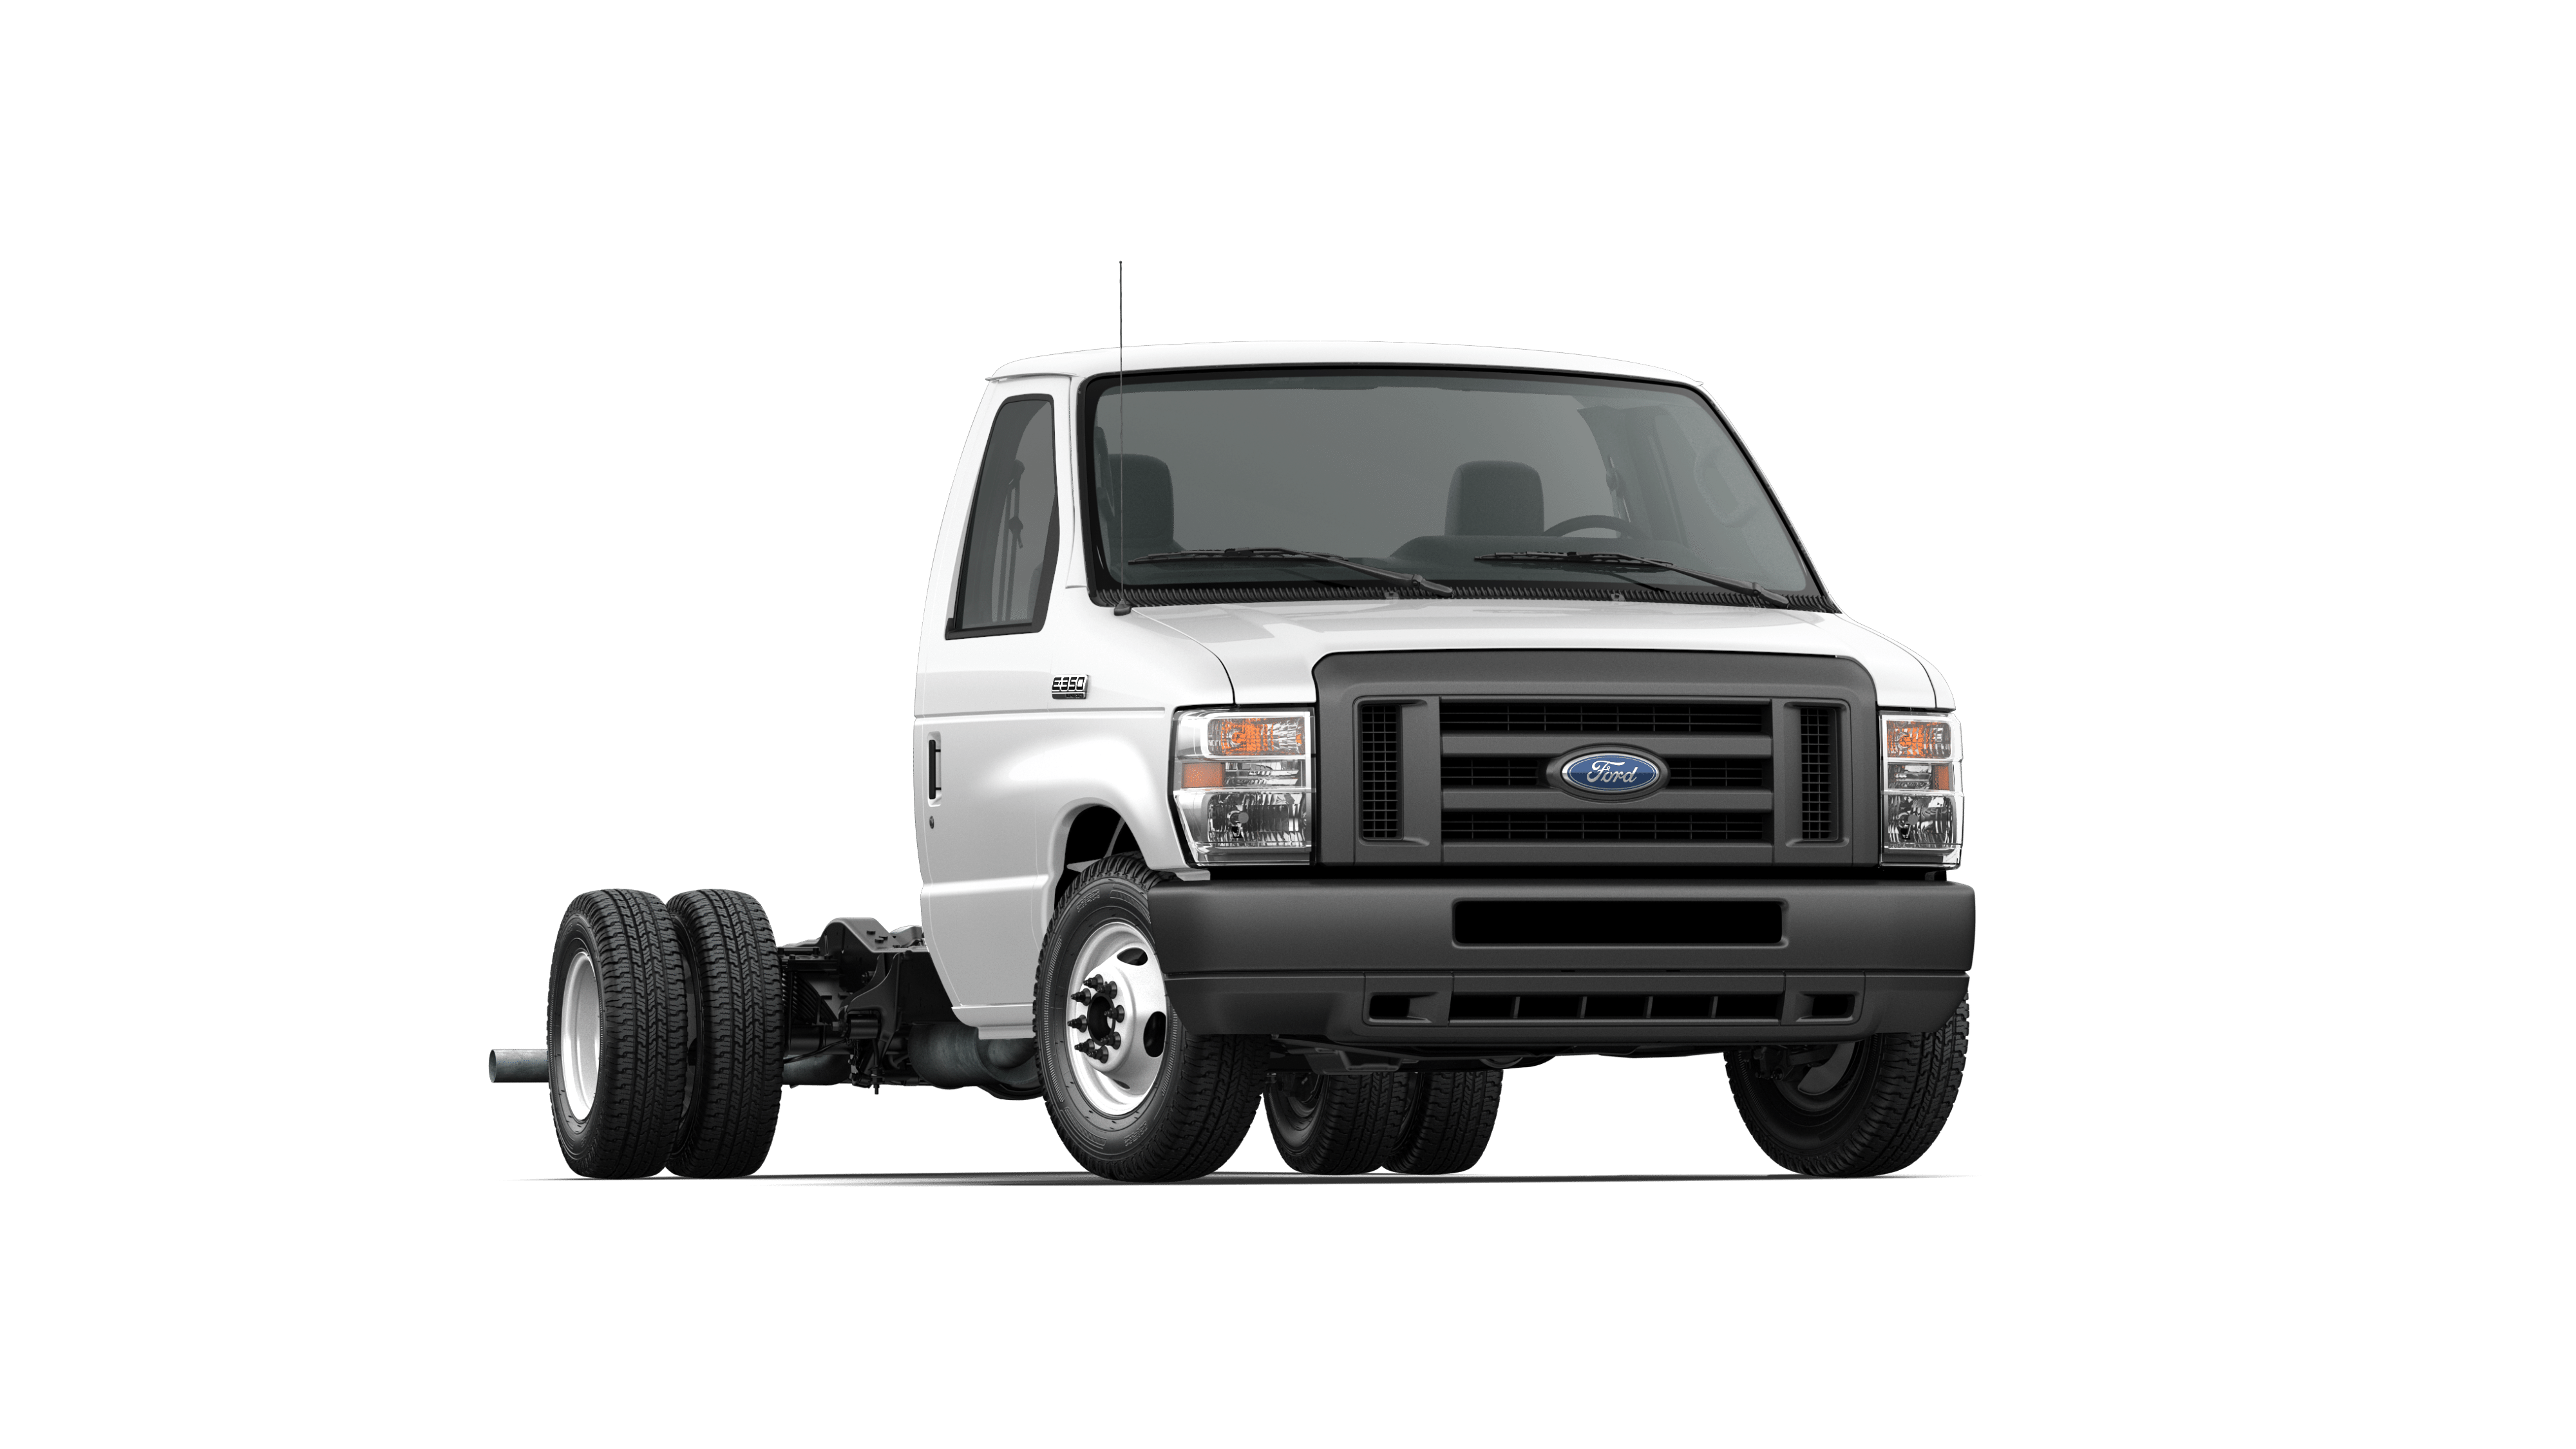 2019 Ford E-Series Cutaway for sale in Freeland - 1FDXE4FS9KDC02617 -  McDonald Ford Inc.